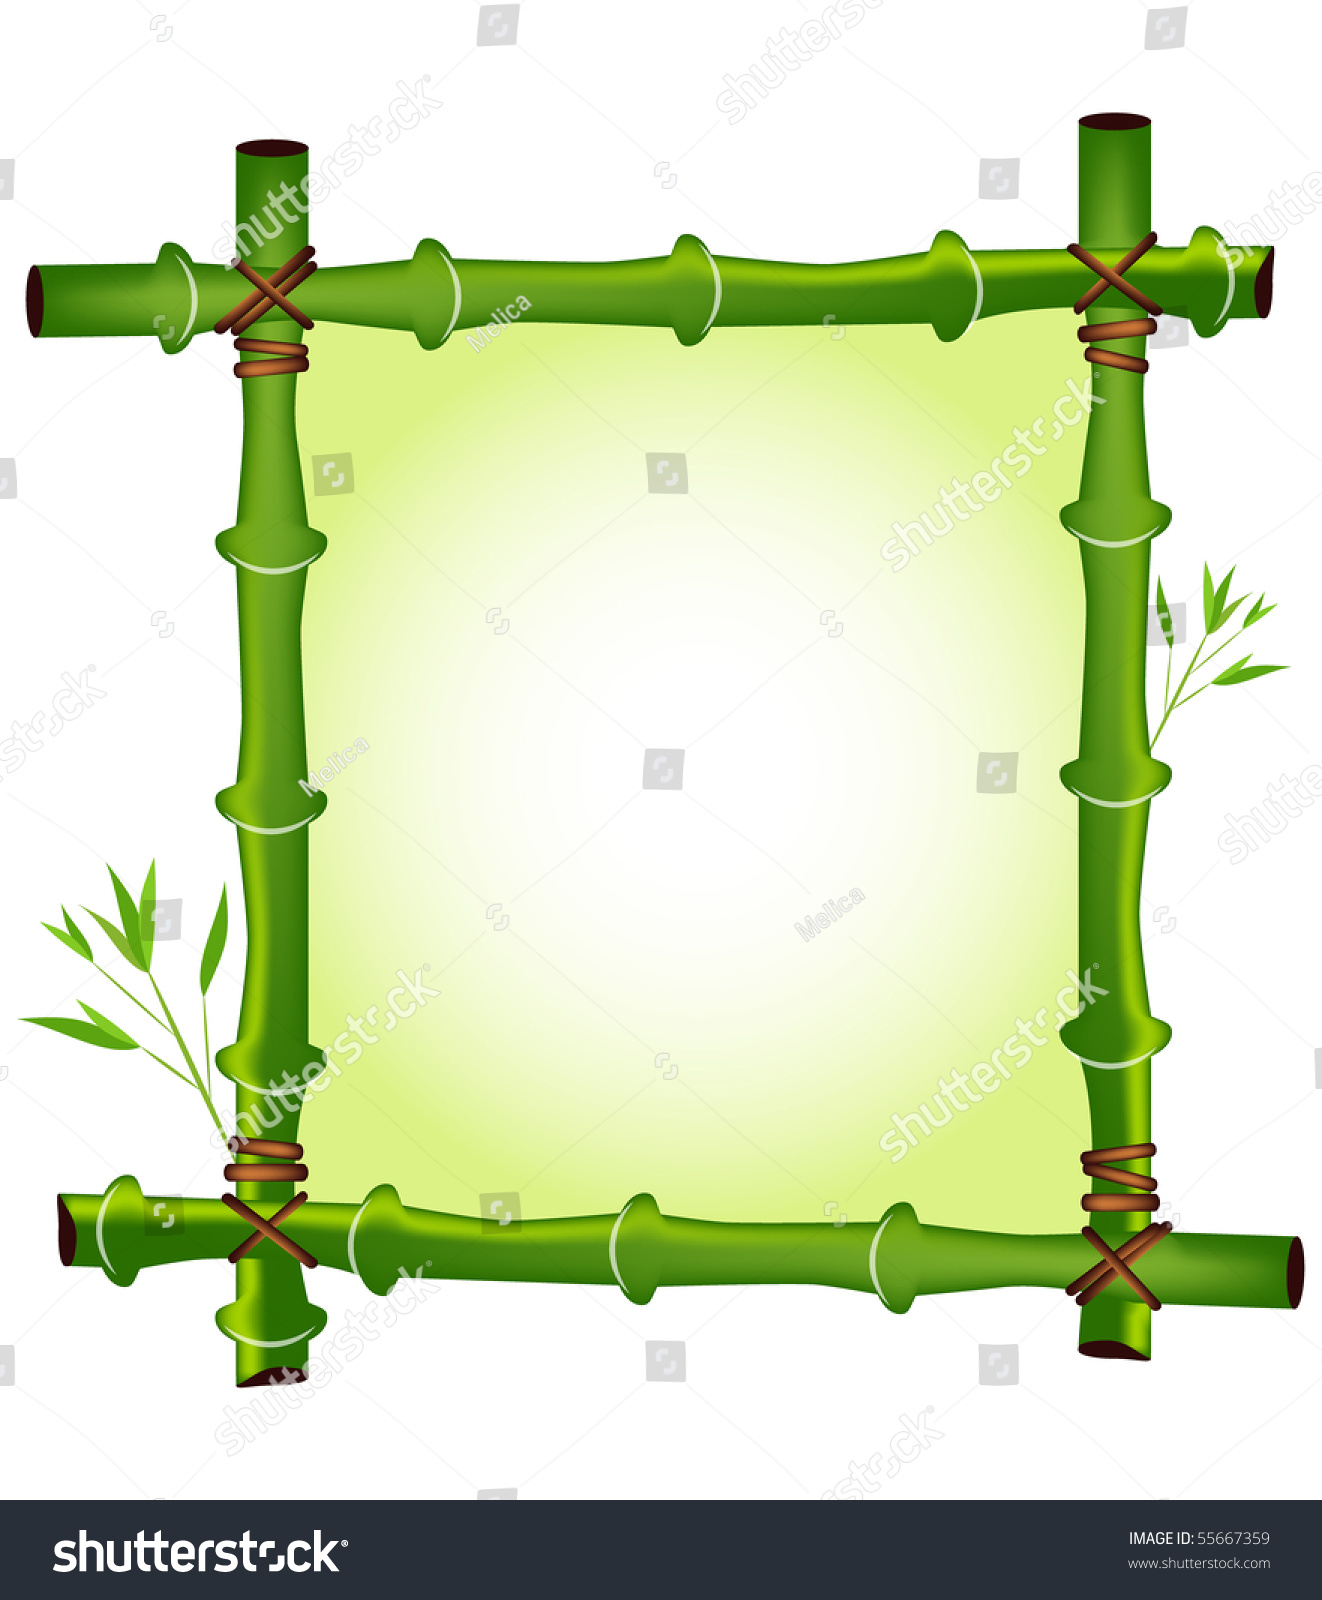 Green Bamboo Frame Design Stock Vector (Royalty Free) 55667359